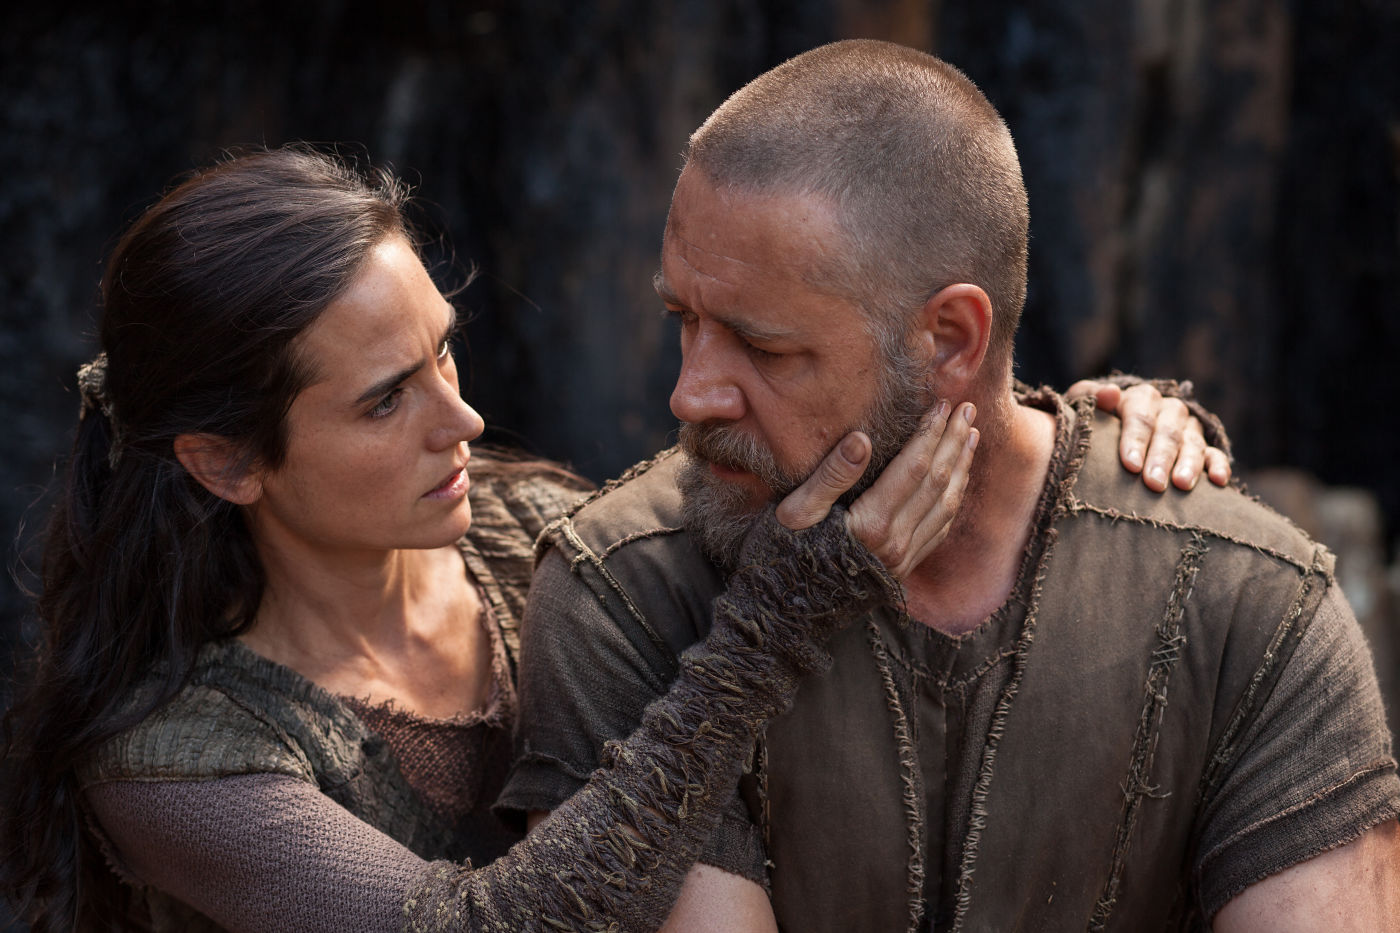 jennifer connely in russell crowe v filmu noe (noah)